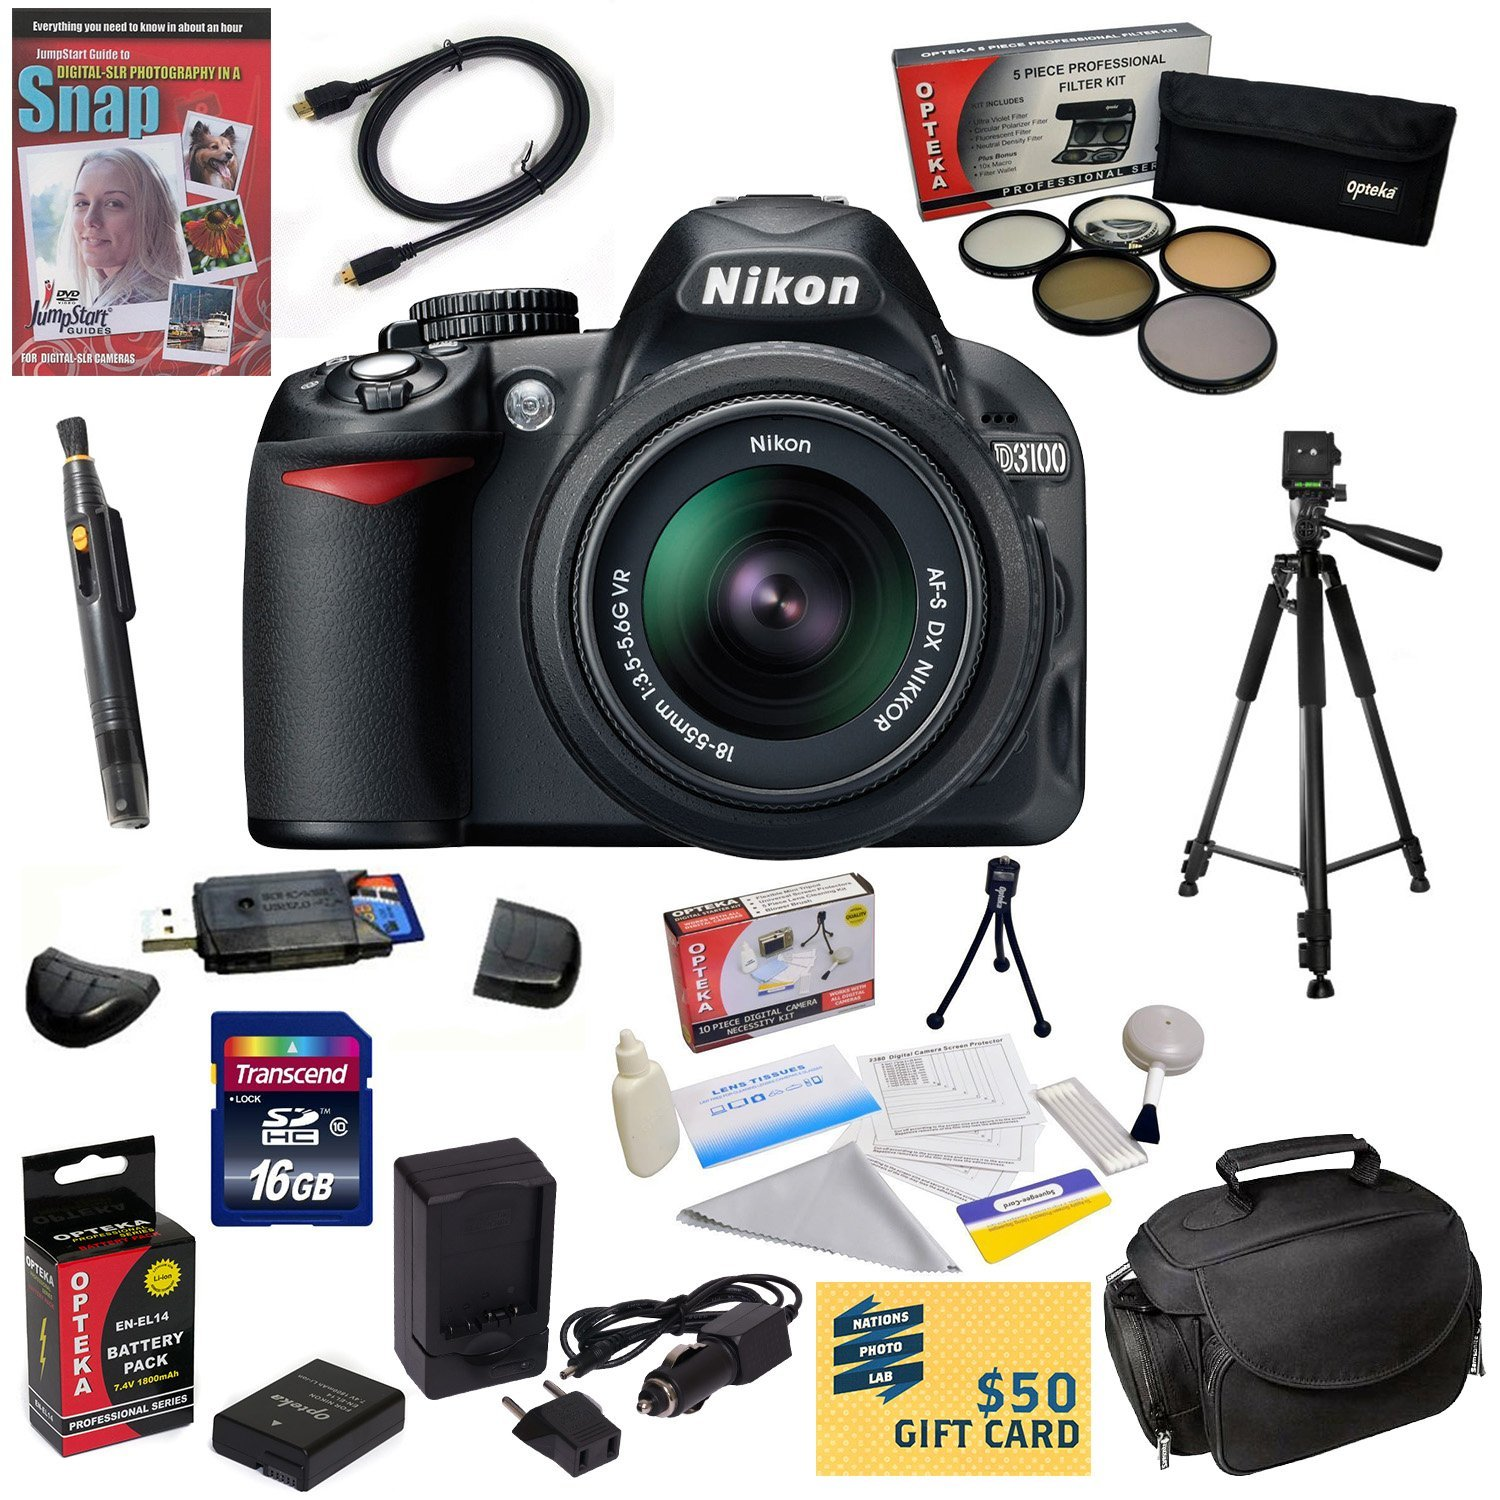 Nikon D3100 Digital SLR Camera with 18-55mm NIKKOR VR Len...